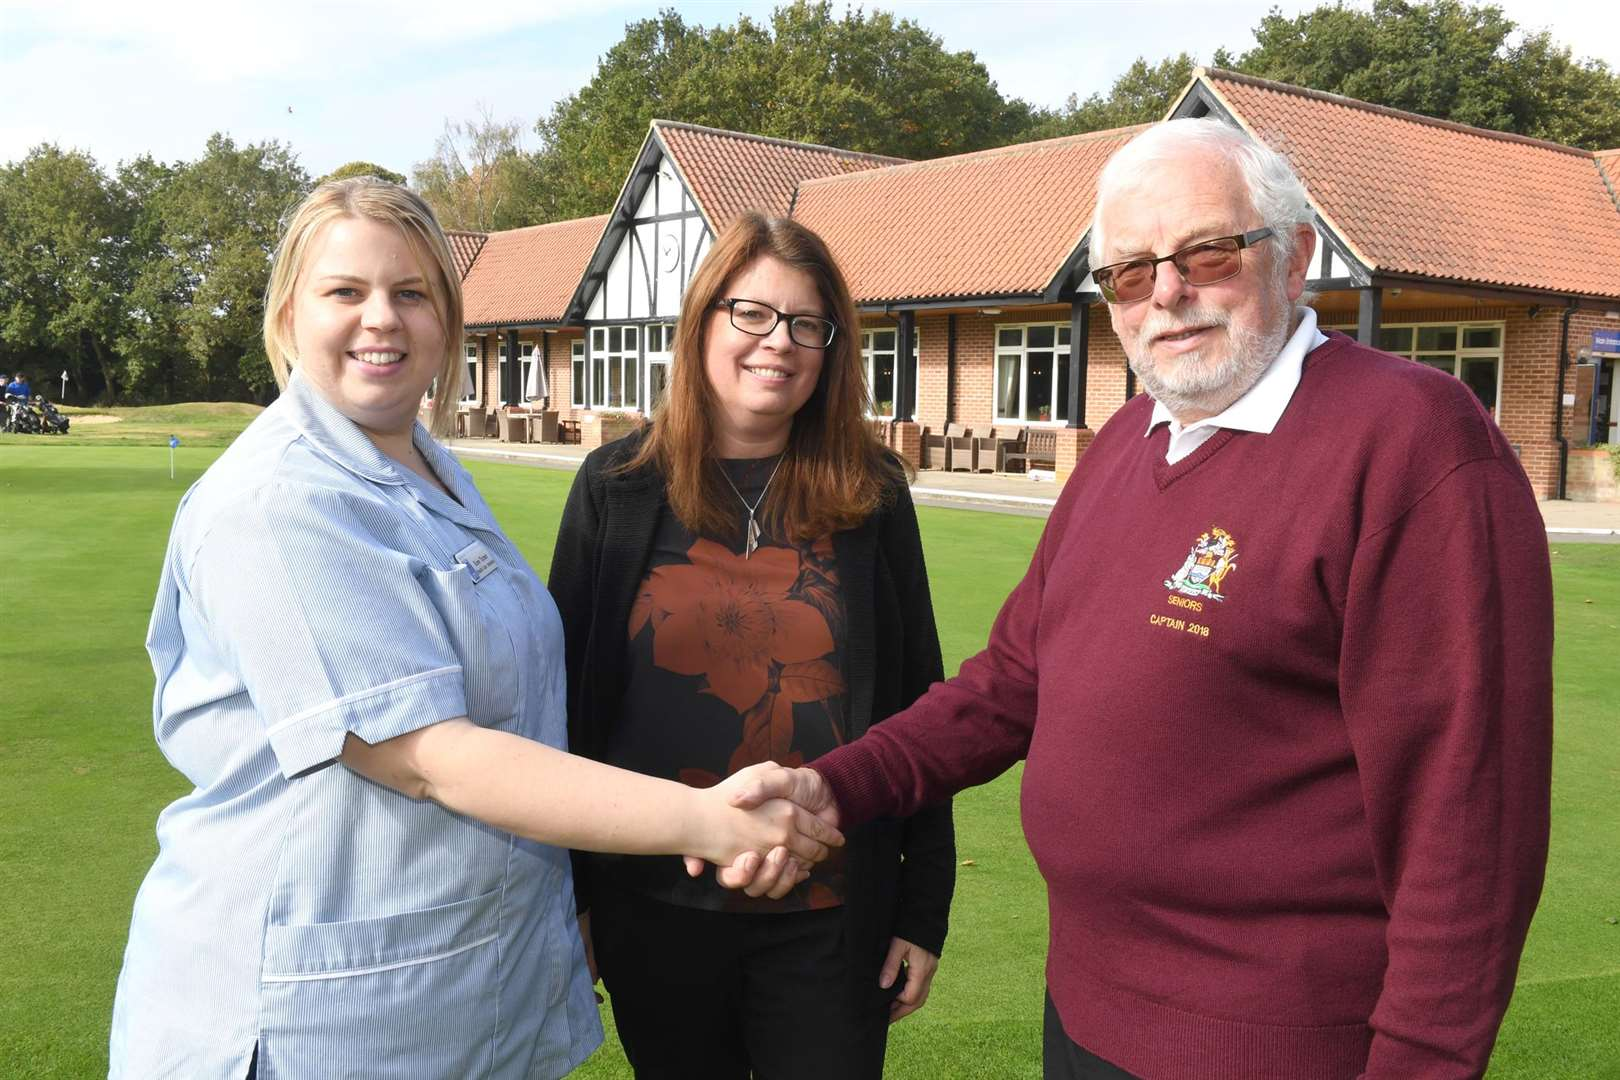 Newark Golf Club Seniors present cheques to charities after fundraising throughout the year..L-R Mrs Rose Turner - health and care assistant at Beaumond Hospice, Mrs Kate Baxter - Childrens' Bereavement Centre, director, Keith Martin Seniors' Captain.. (4608040)